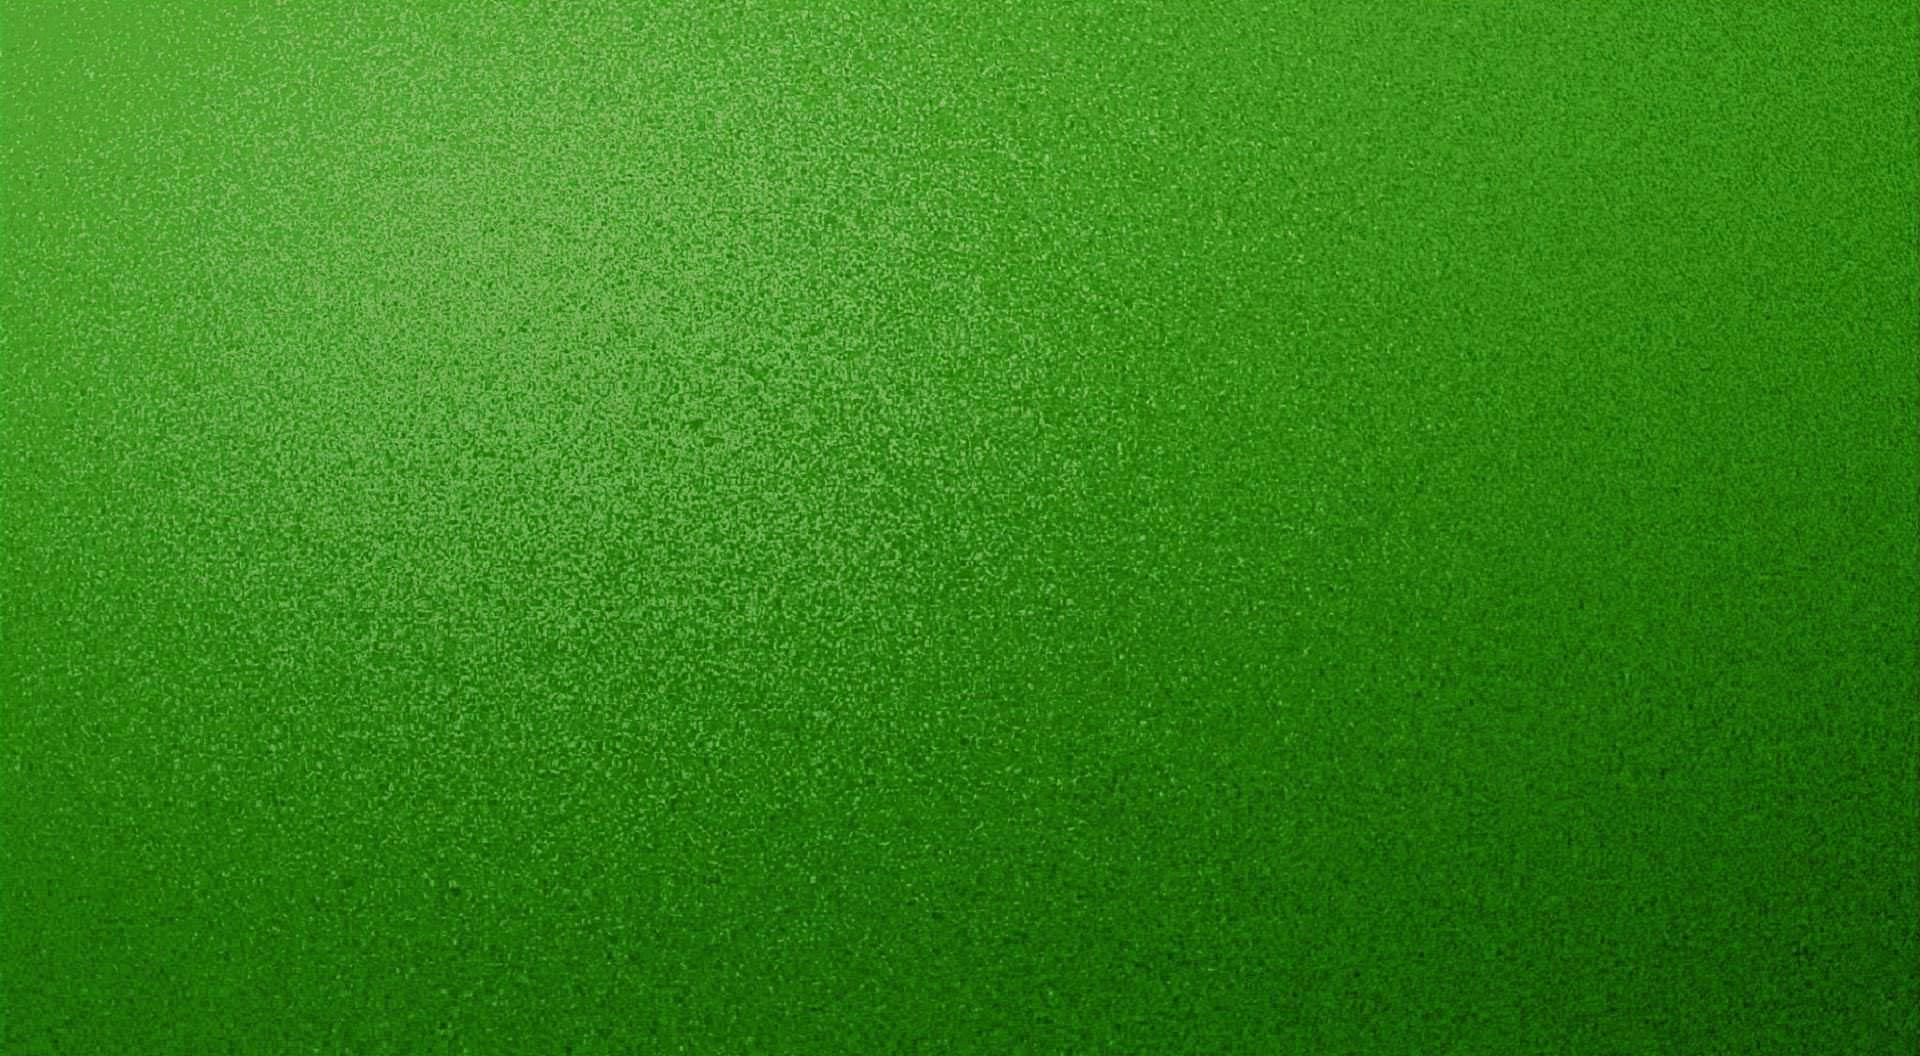 Awesome Green Textured Background